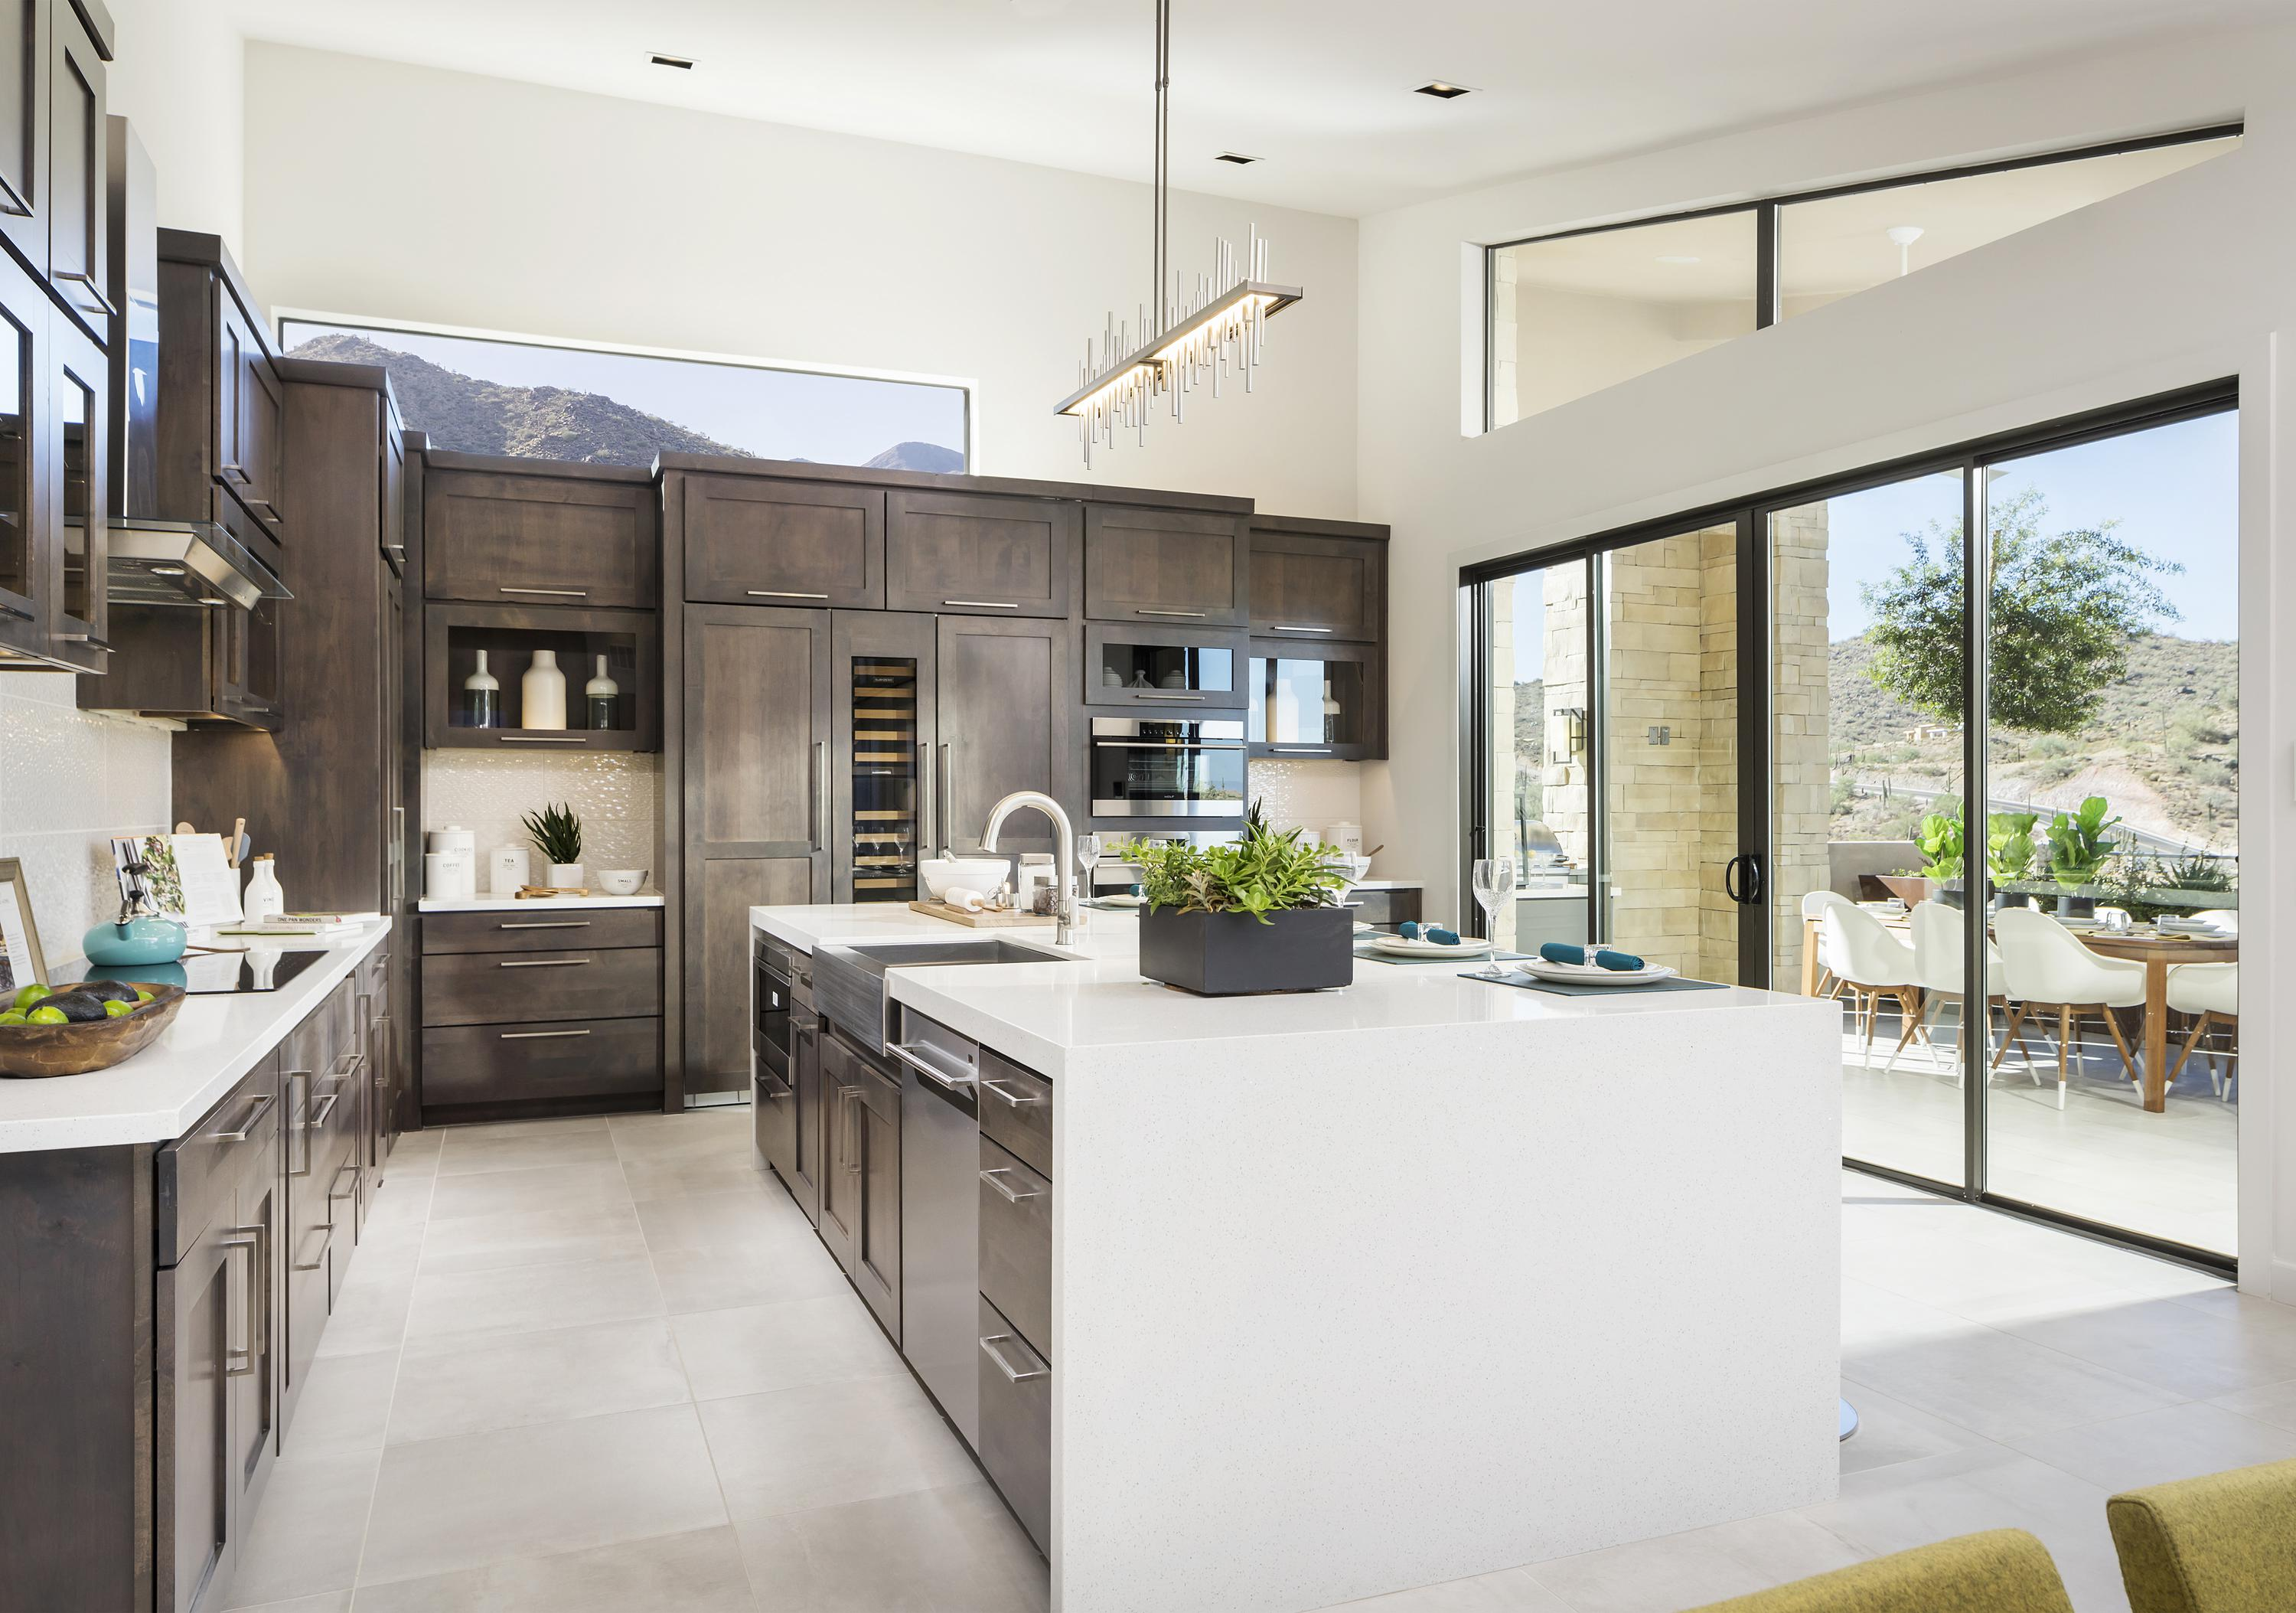 Beautiful Kitchen Designs for Today&39;s Lifestyles   Build Beautiful